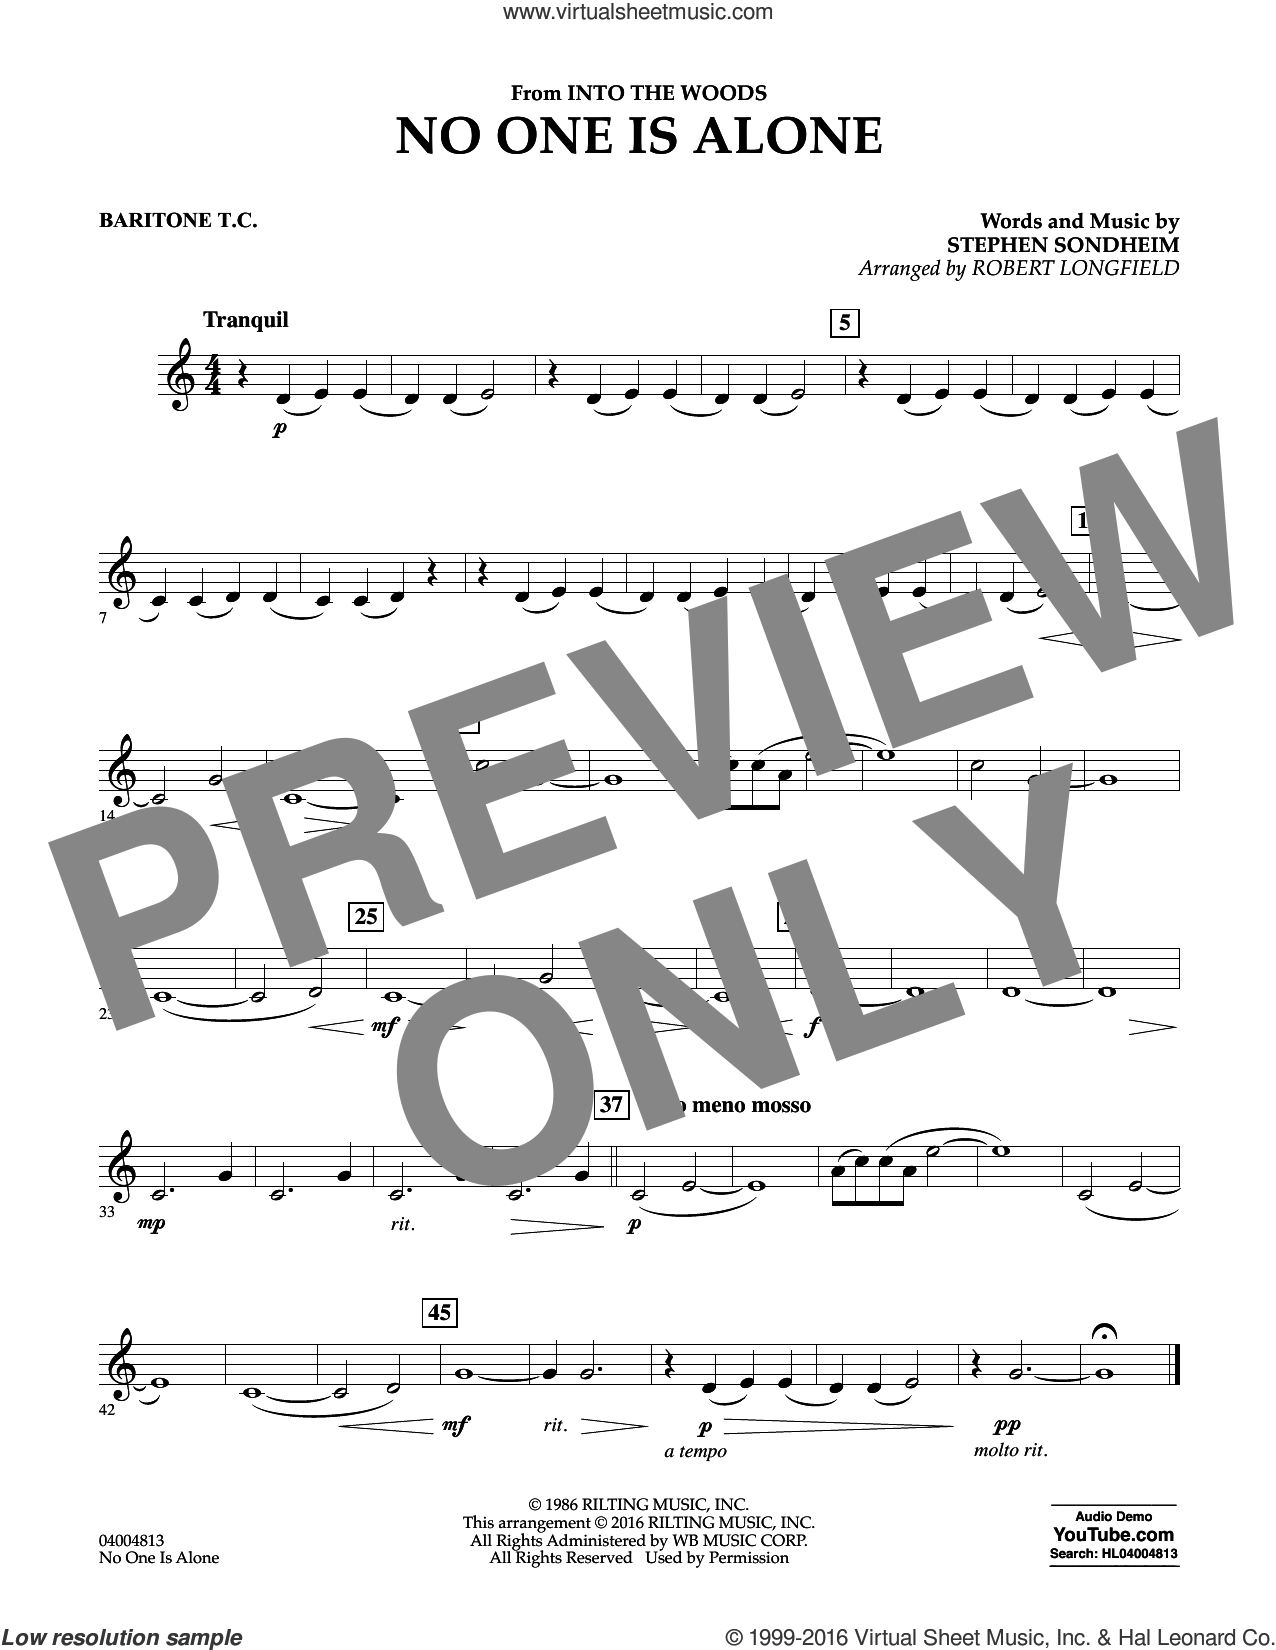 No One Is Alone sheet music for concert band (baritone t.c.) by Stephen Sondheim and Robert Longfield, intermediate concert band (baritone t.c.). Score Image Preview.